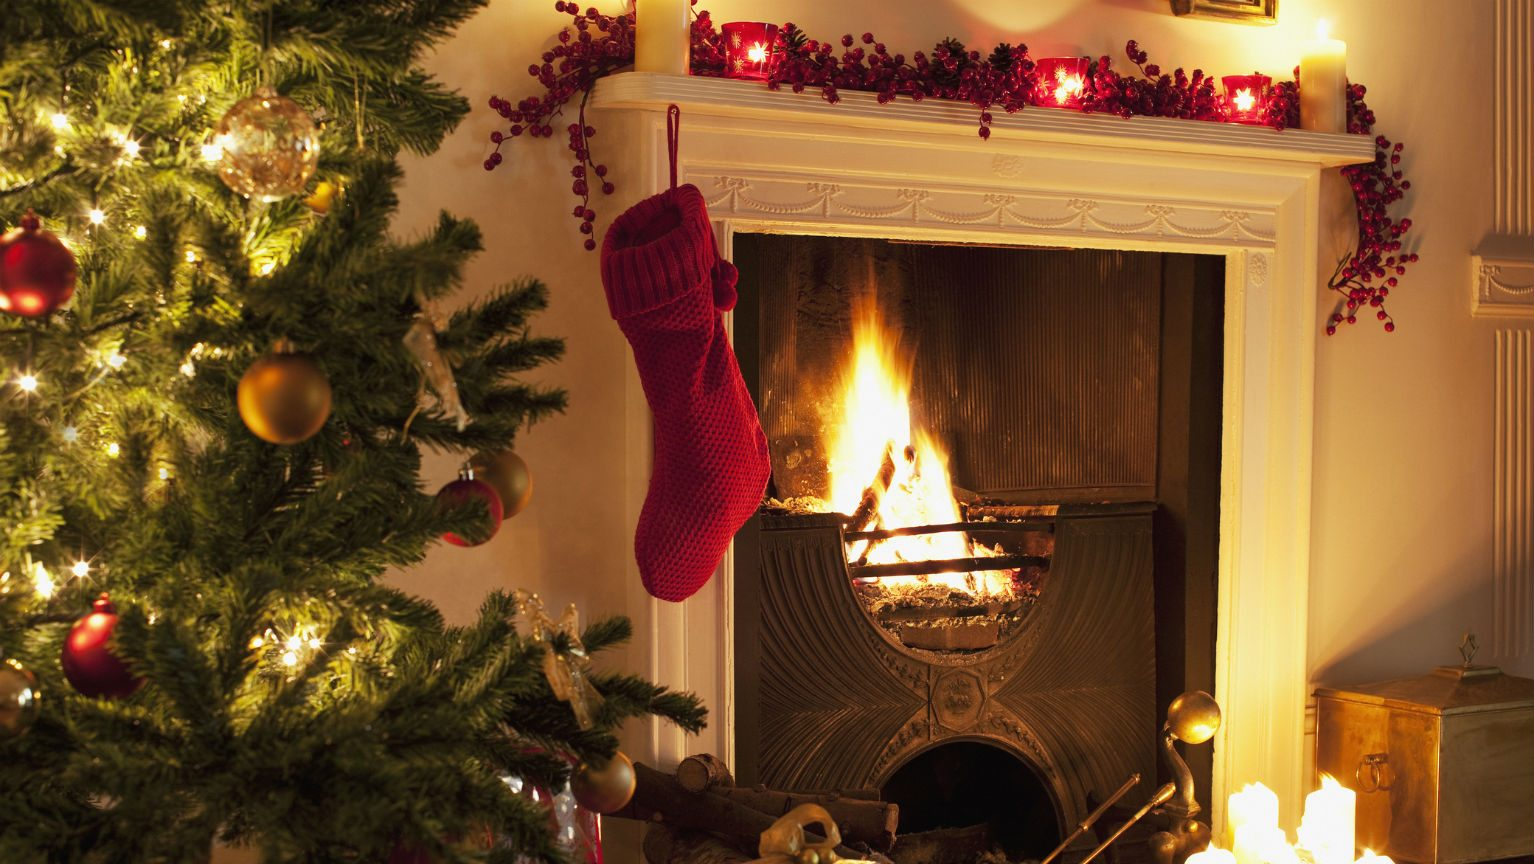 Stocking hanging over fireplace